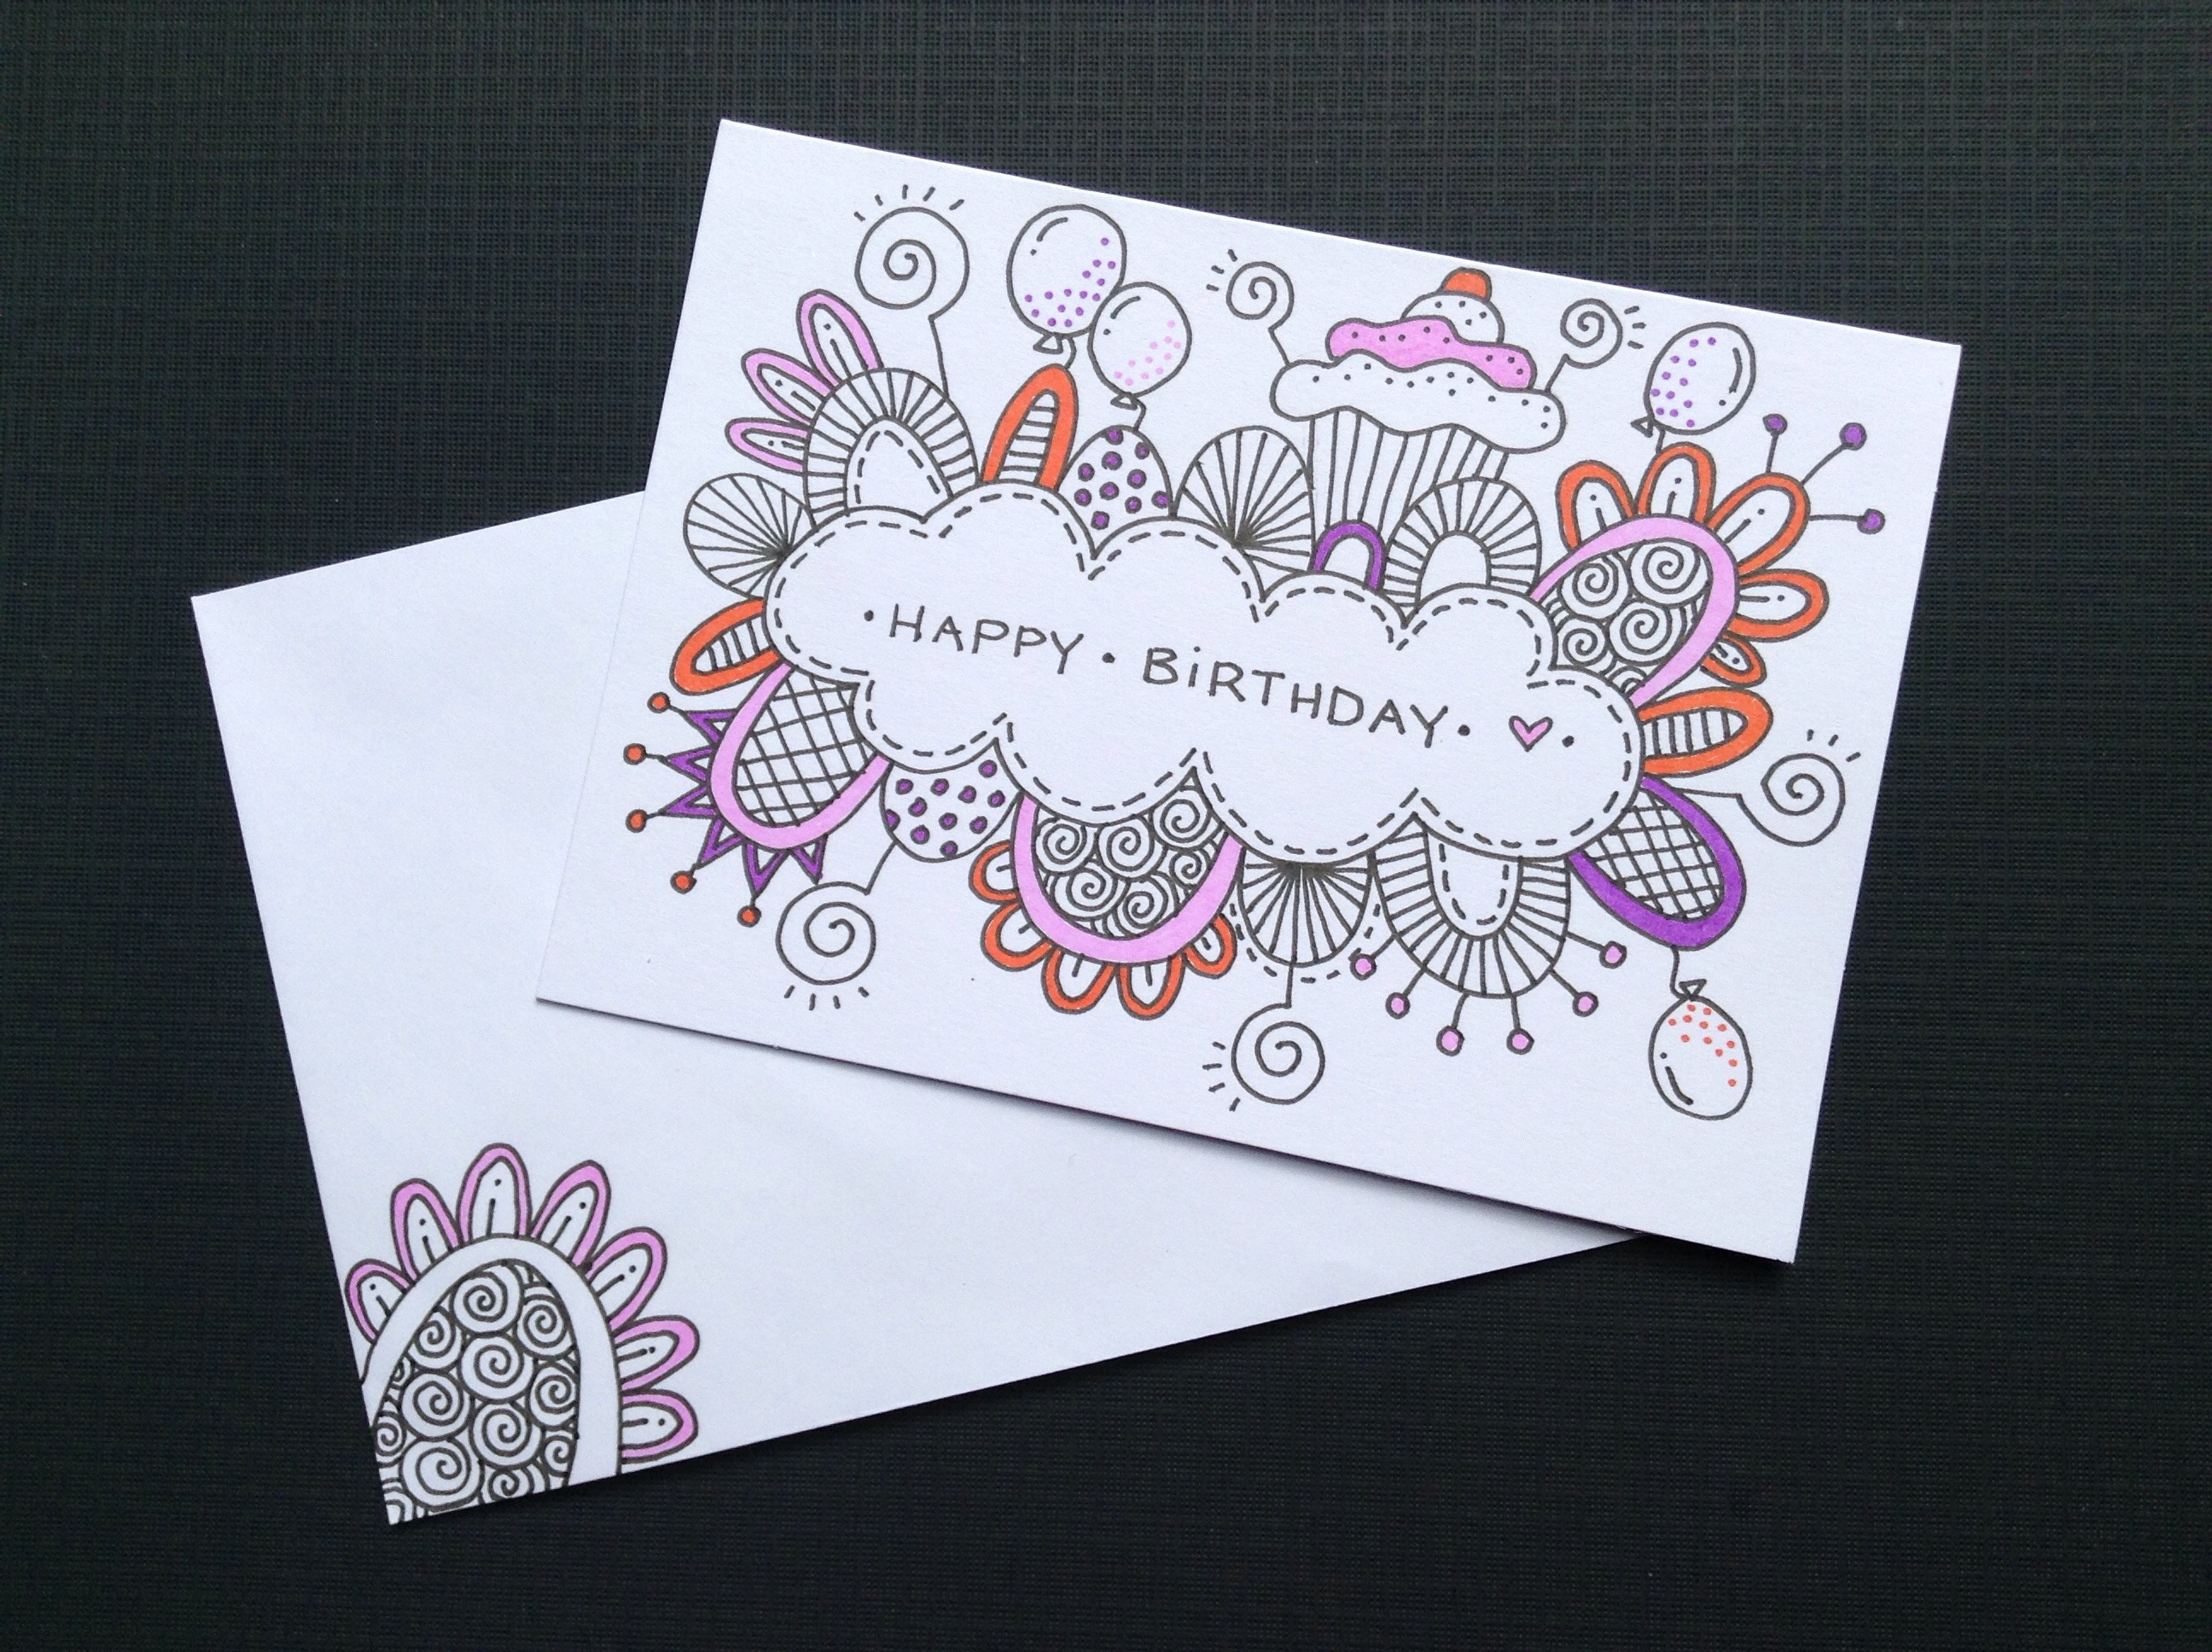 happy birthday card drawing ; birthday-card-drawing-ideas-25-best-ideas-about-hand-drawn-cards-on-pinterest-love-cards